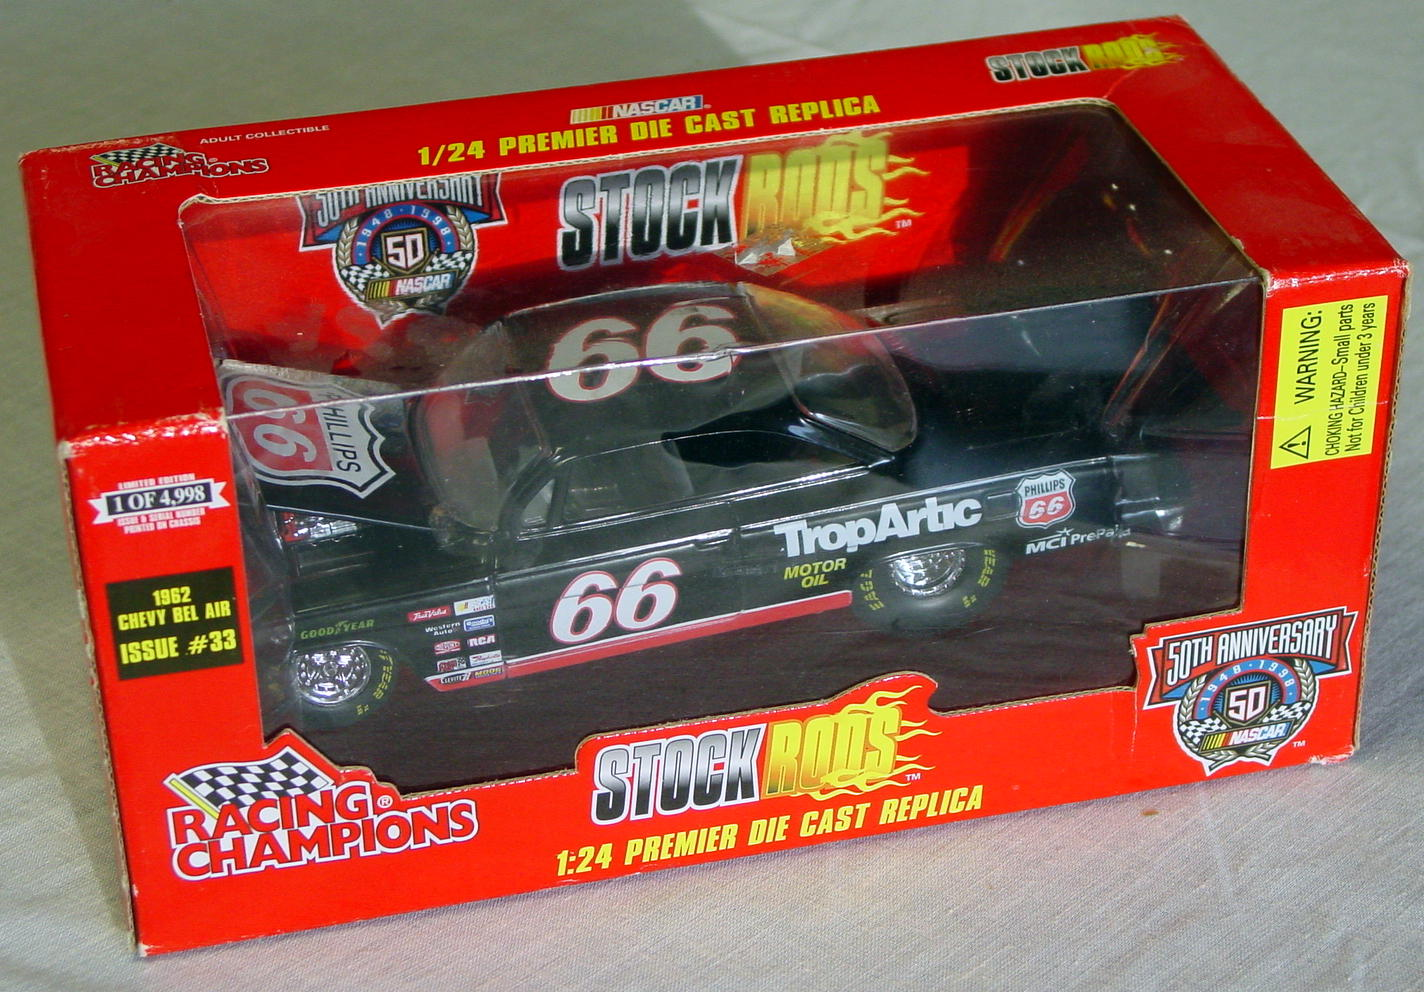 1_24 Scale - RC Stock Rods 62 Chevy Bel Air black 1/4998